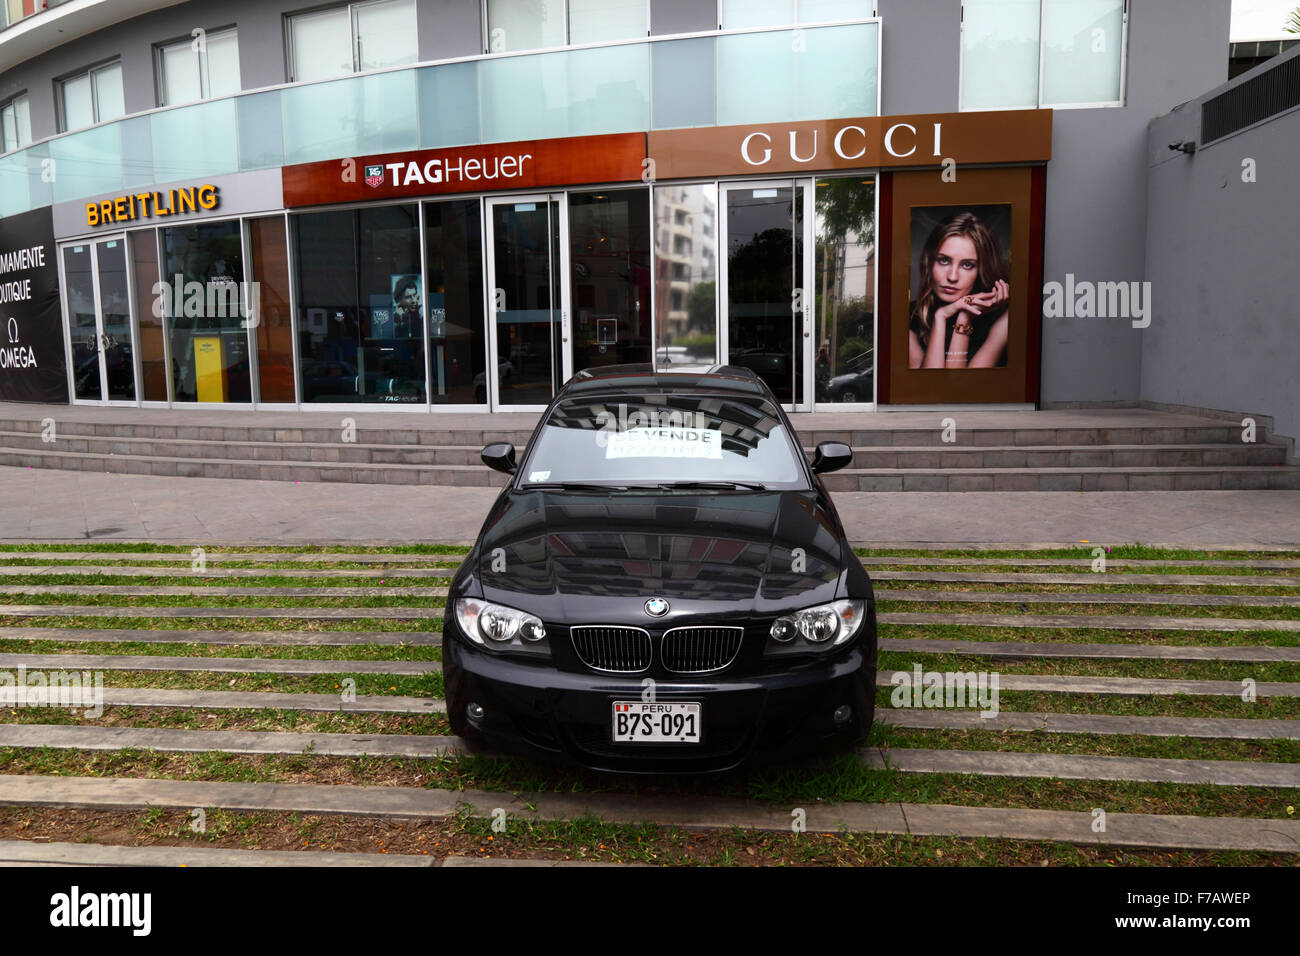 Bmw Store Stock Photos Amp Bmw Store Stock Images Alamy